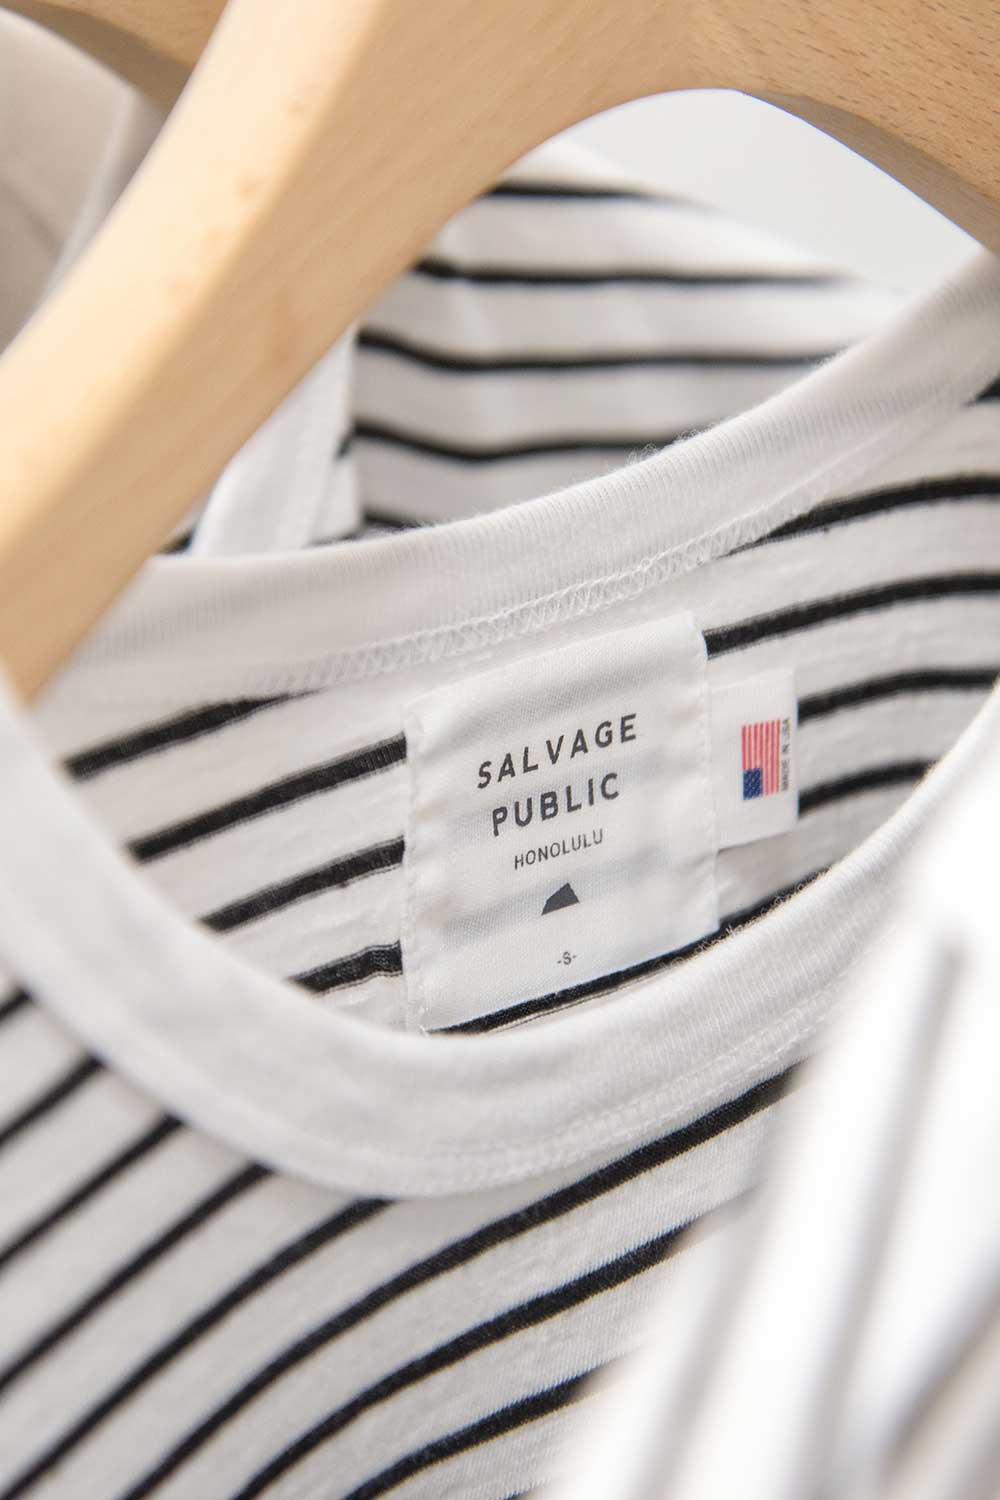 Salvage Public stripe tee on hanger